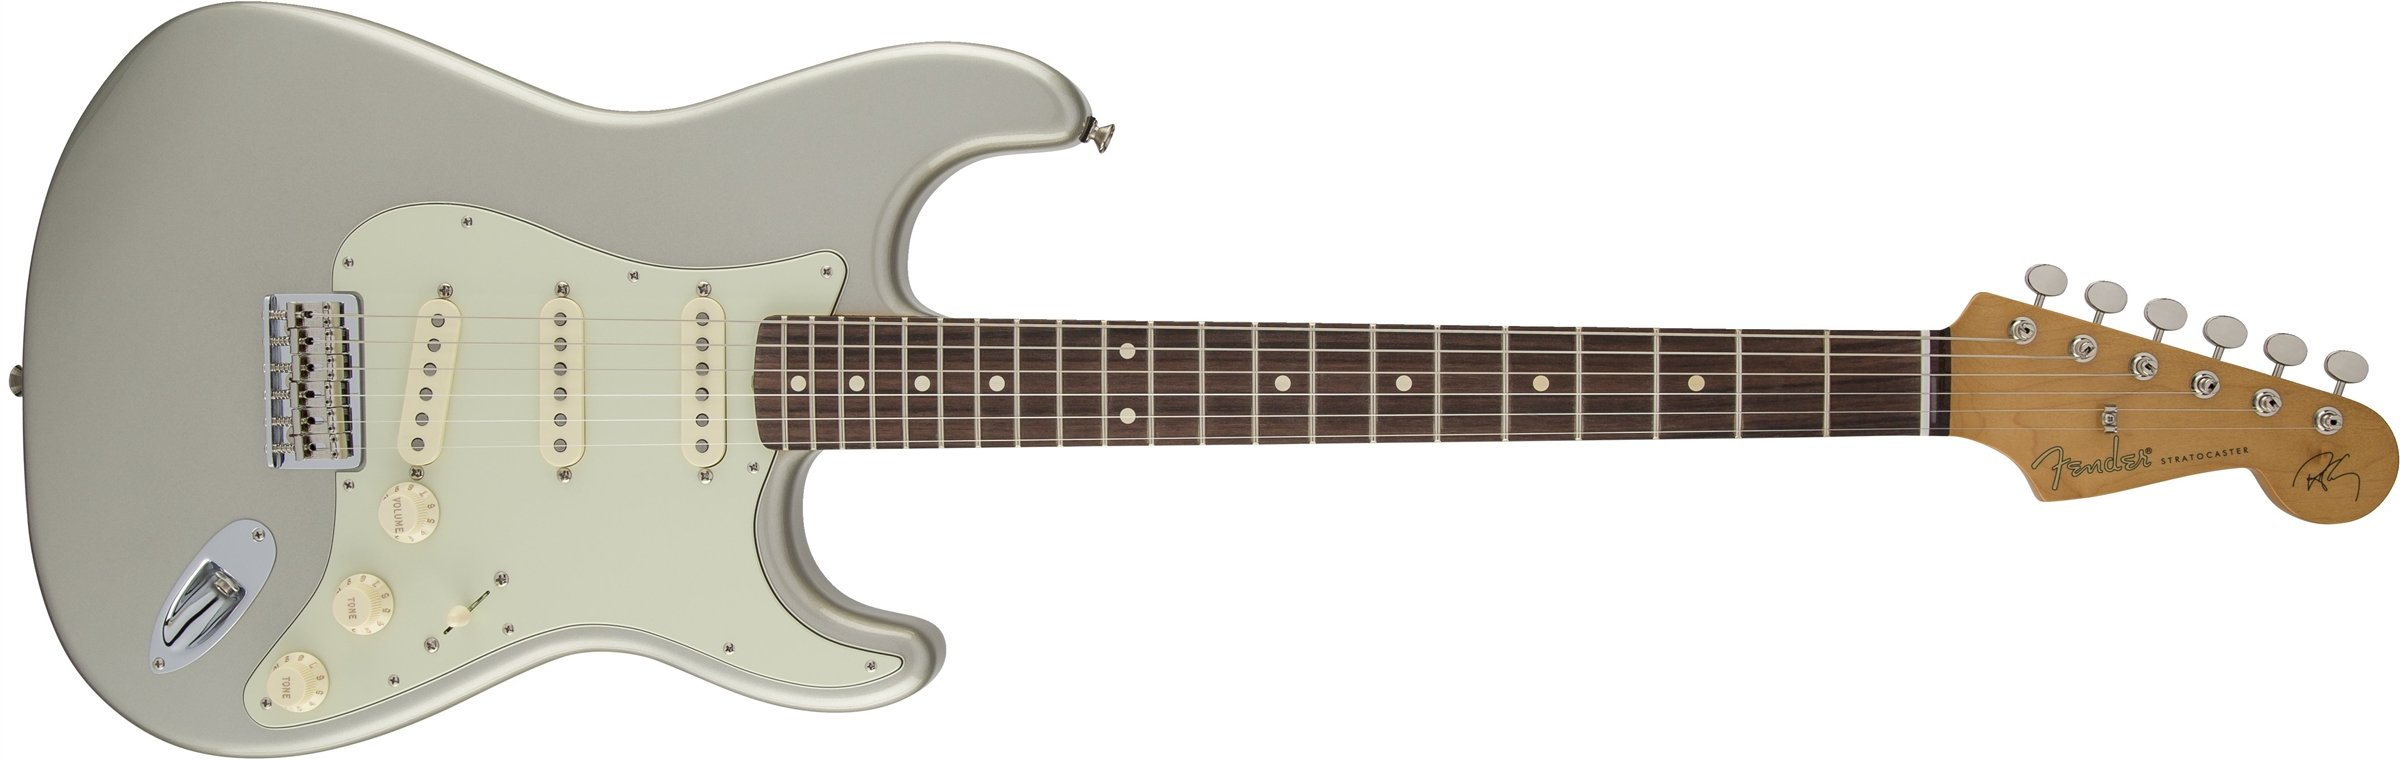 Cheap Fender Robert Cray Stratocaster Electric Guitar Inca Silver Rosewood Fretboard Black Friday & Cyber Monday 2019